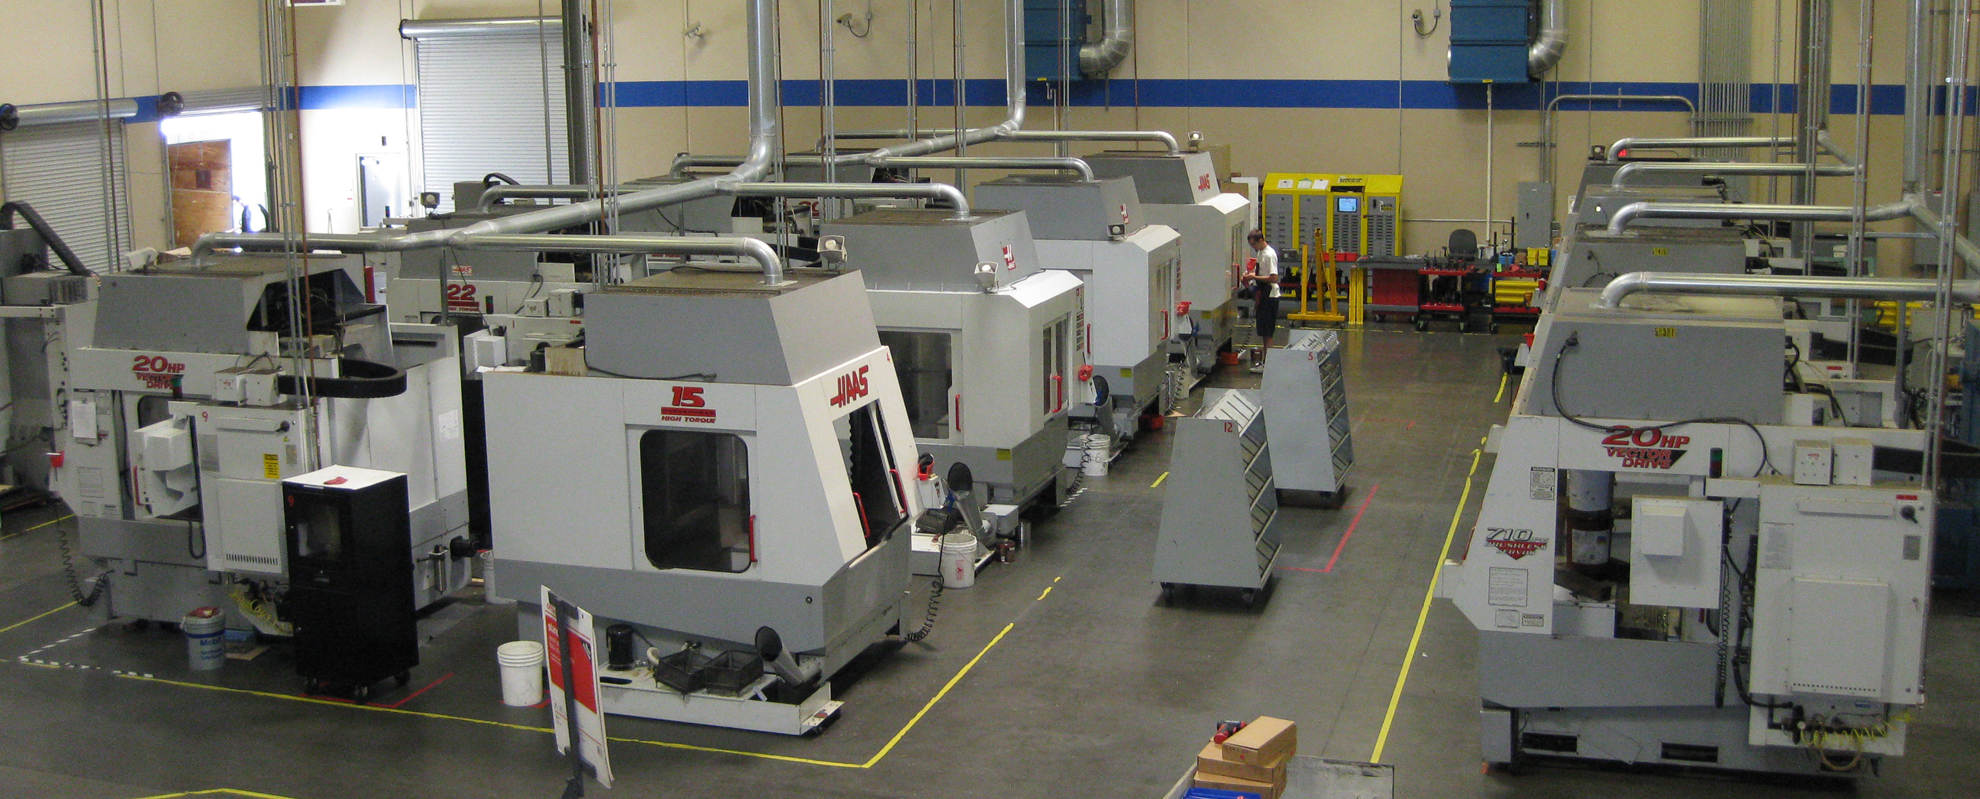 AFR's 30,000 square foot facility with over 15 5-axis CNC Machines.